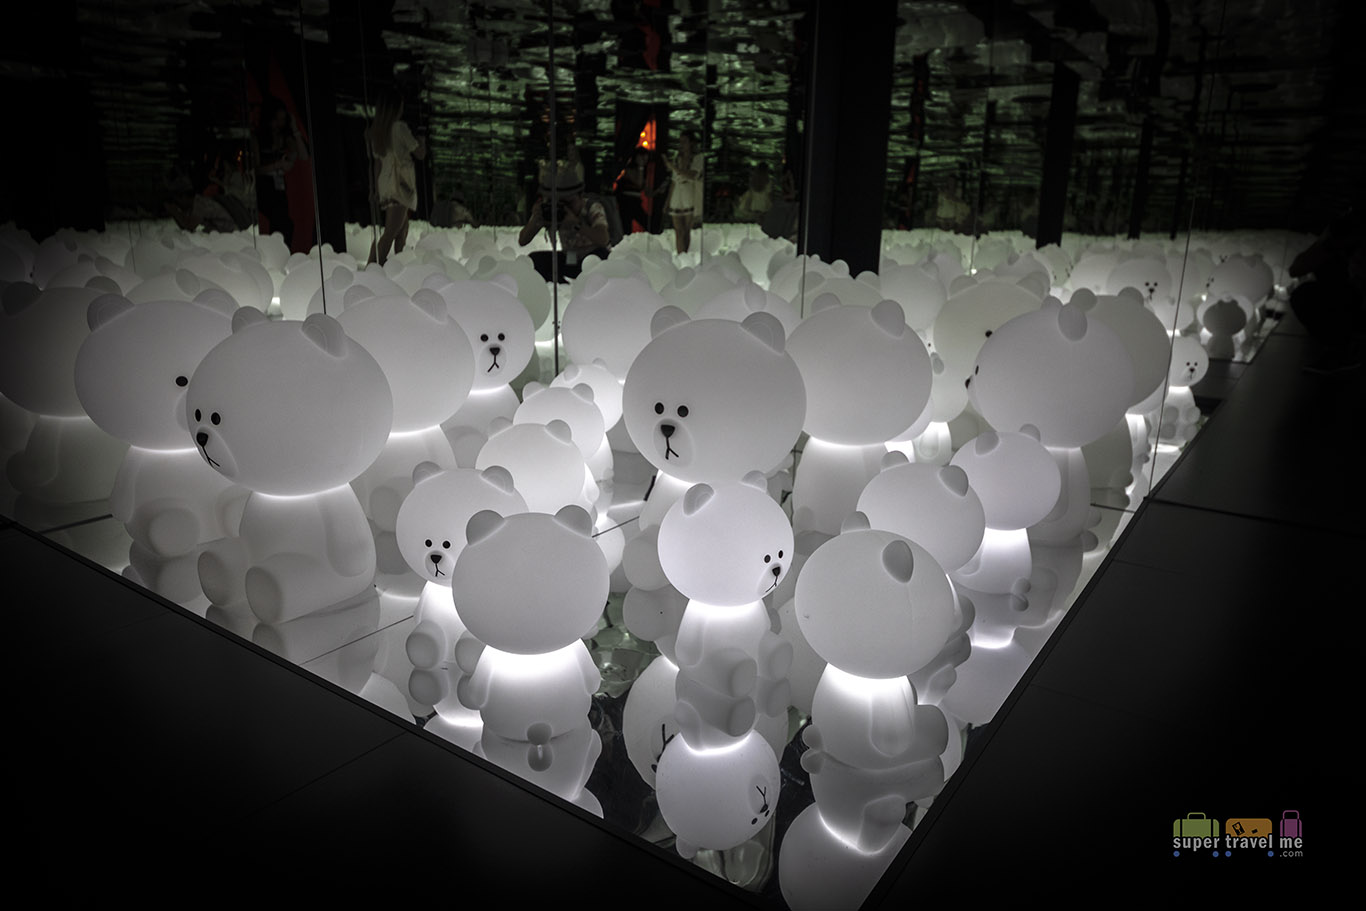 The Infinity mirrored art installation room at LINE VILLAGE BANGKOK